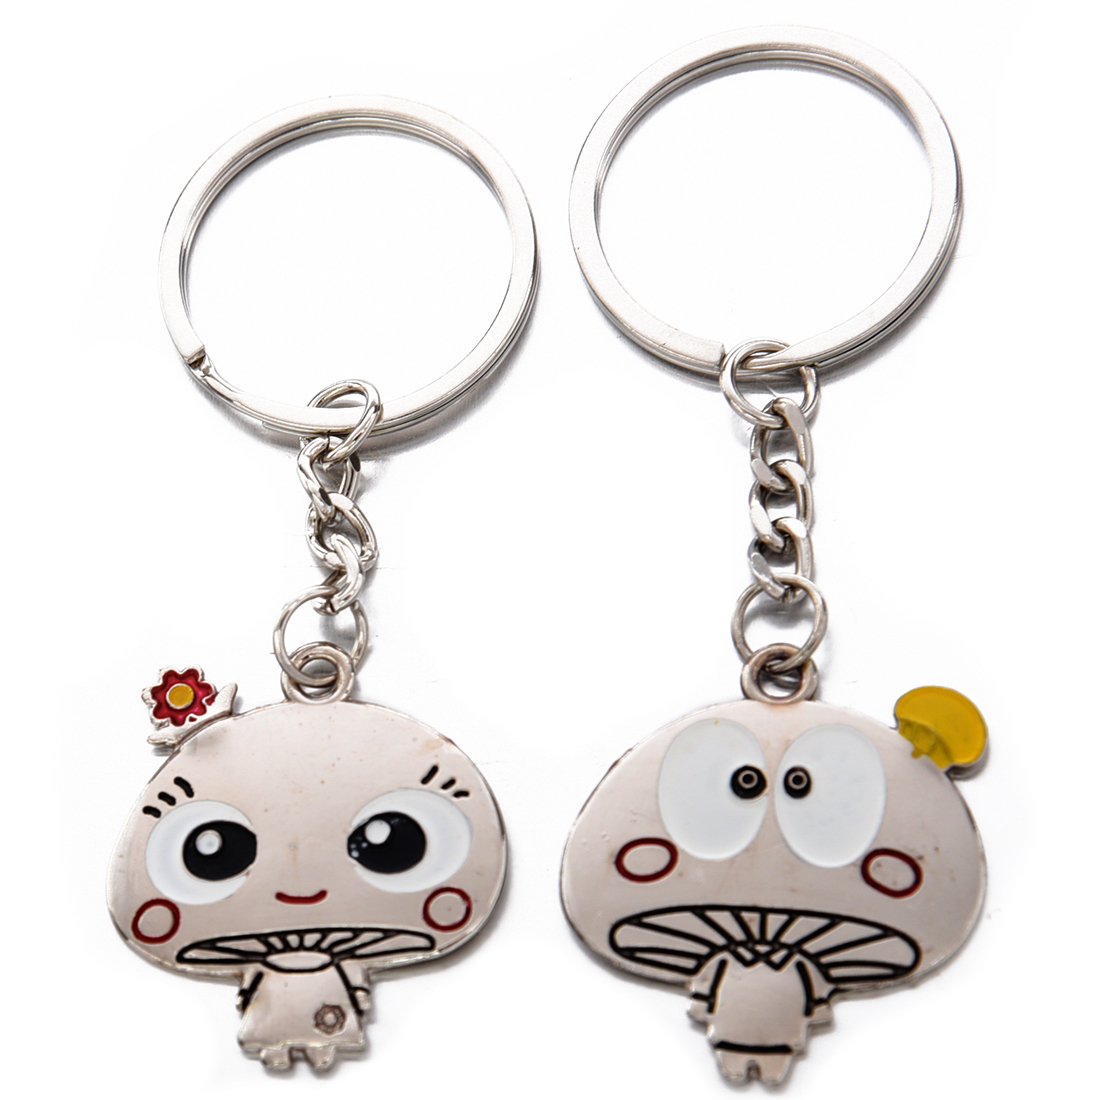 SAF-Mushroom Lovers Alloy Metal Keychain Keyring/love Couple Keychain Unique Special Cute Novel Gift a Pair